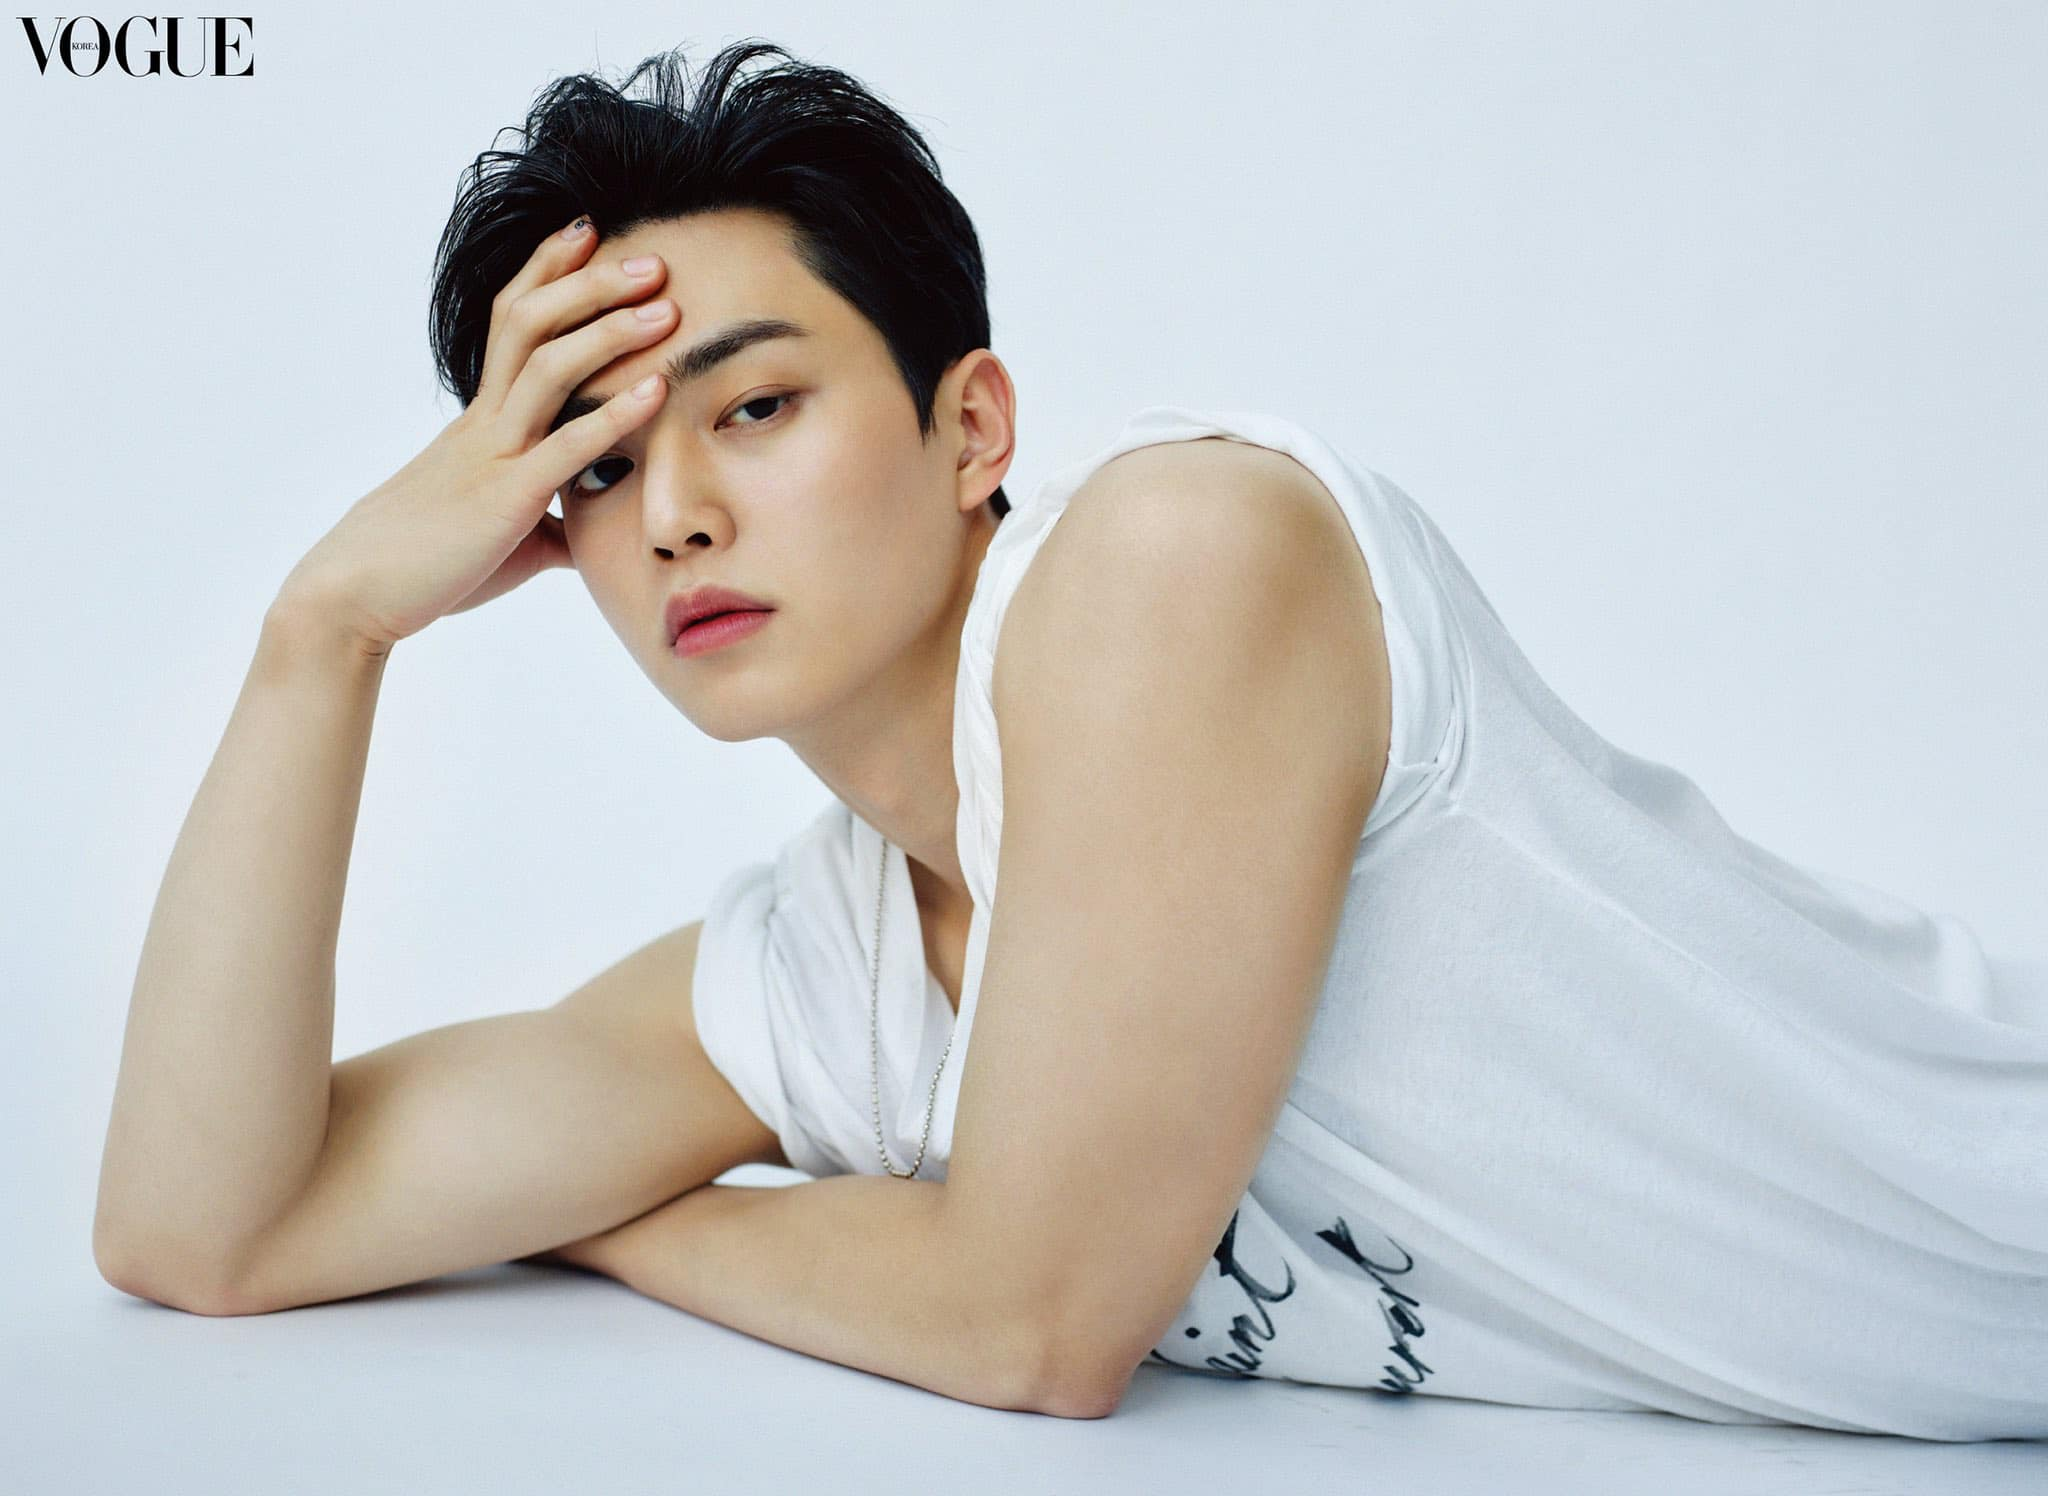 song-kang-exudes-subtle-masculinity-in-new-pictorial-with-vogue-korea-yves-saint-laurent